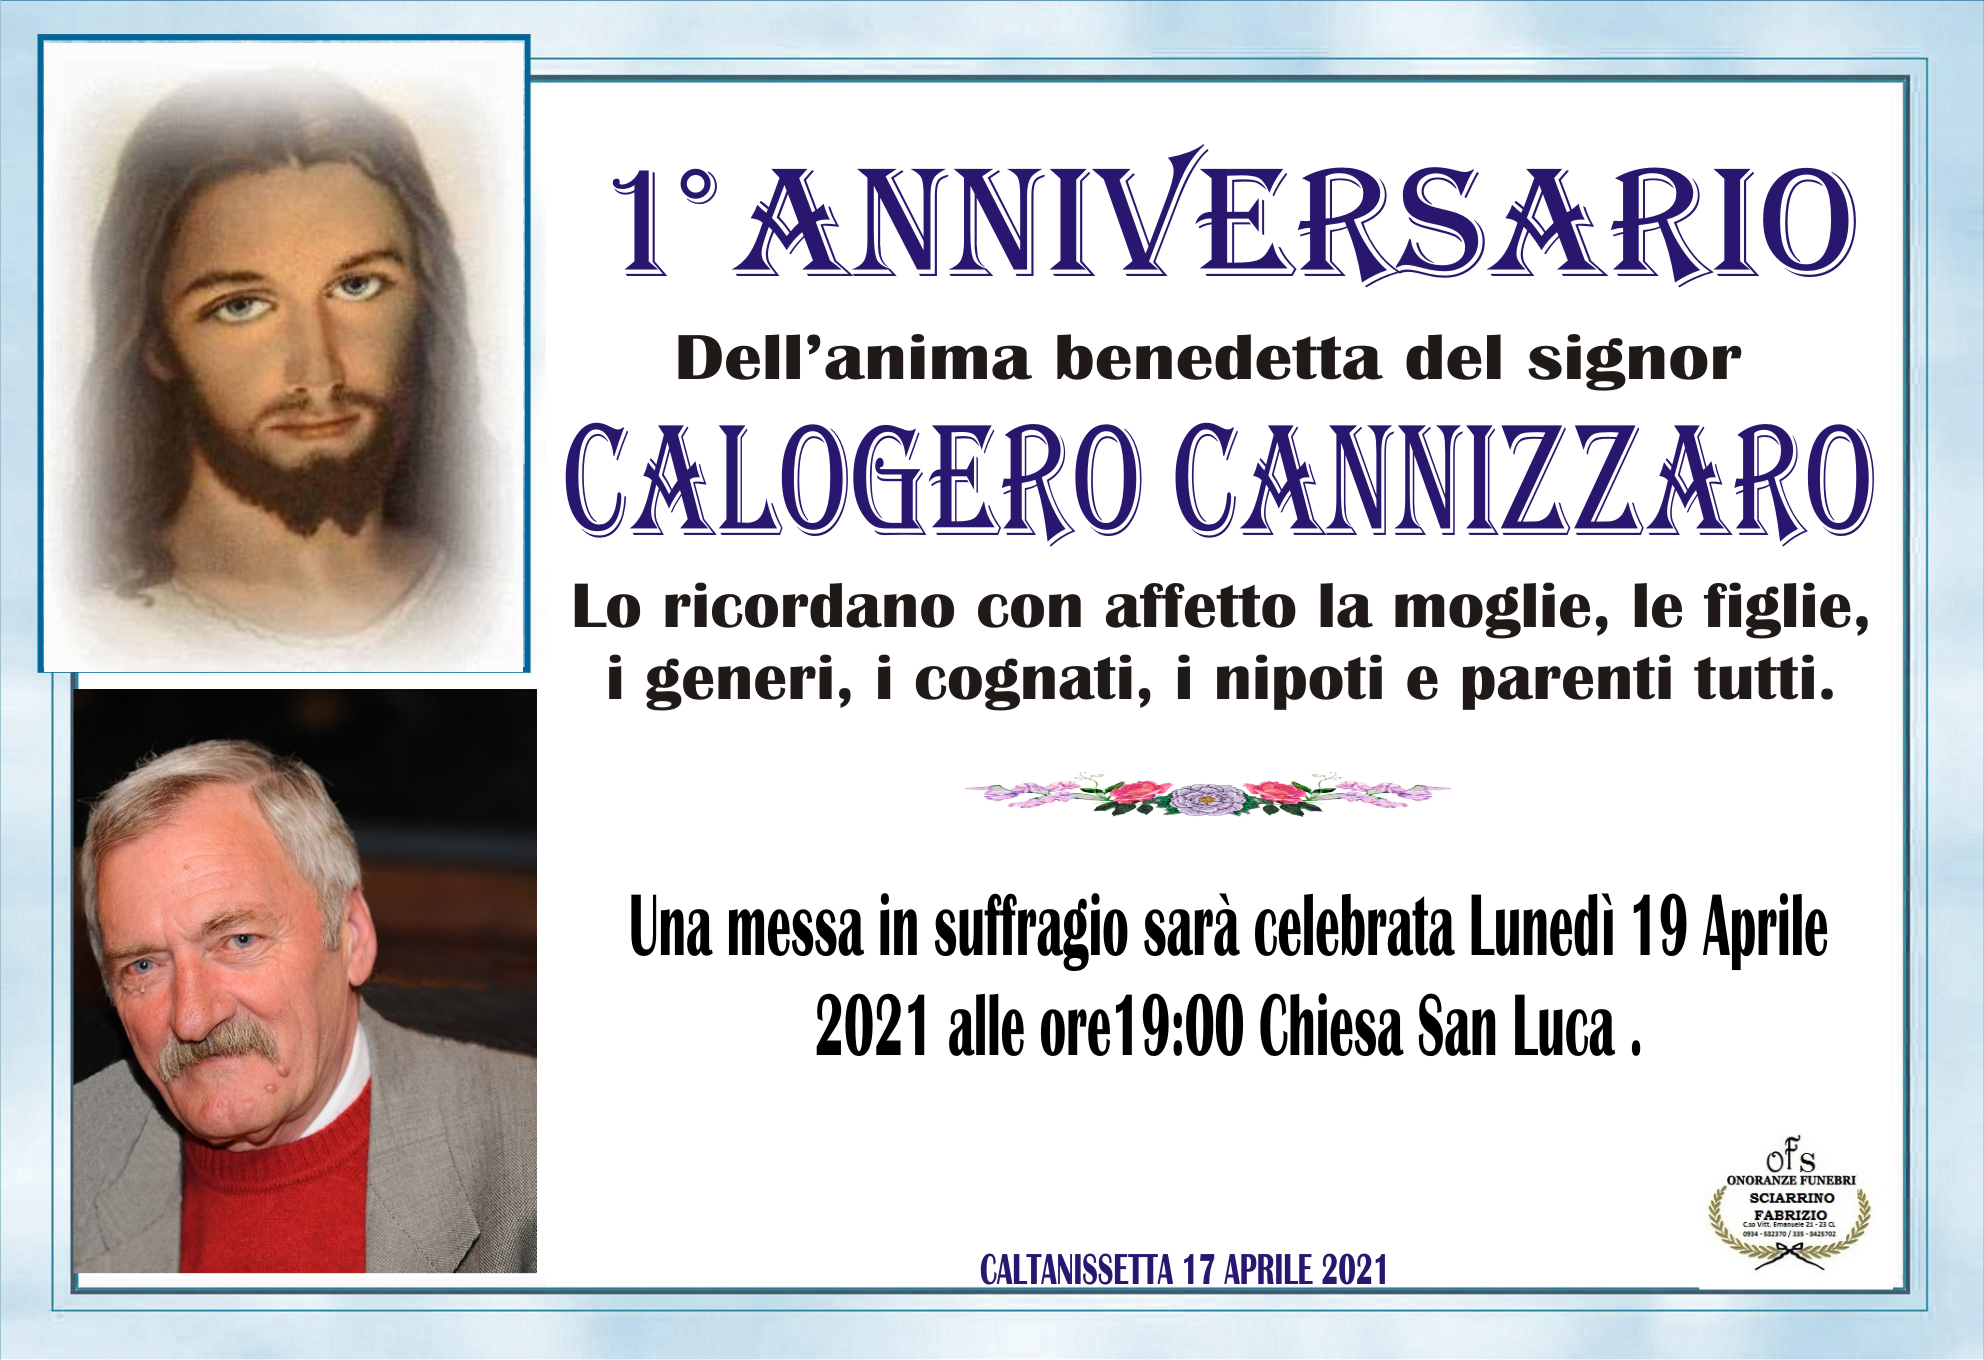 Calogero Cannizzaro